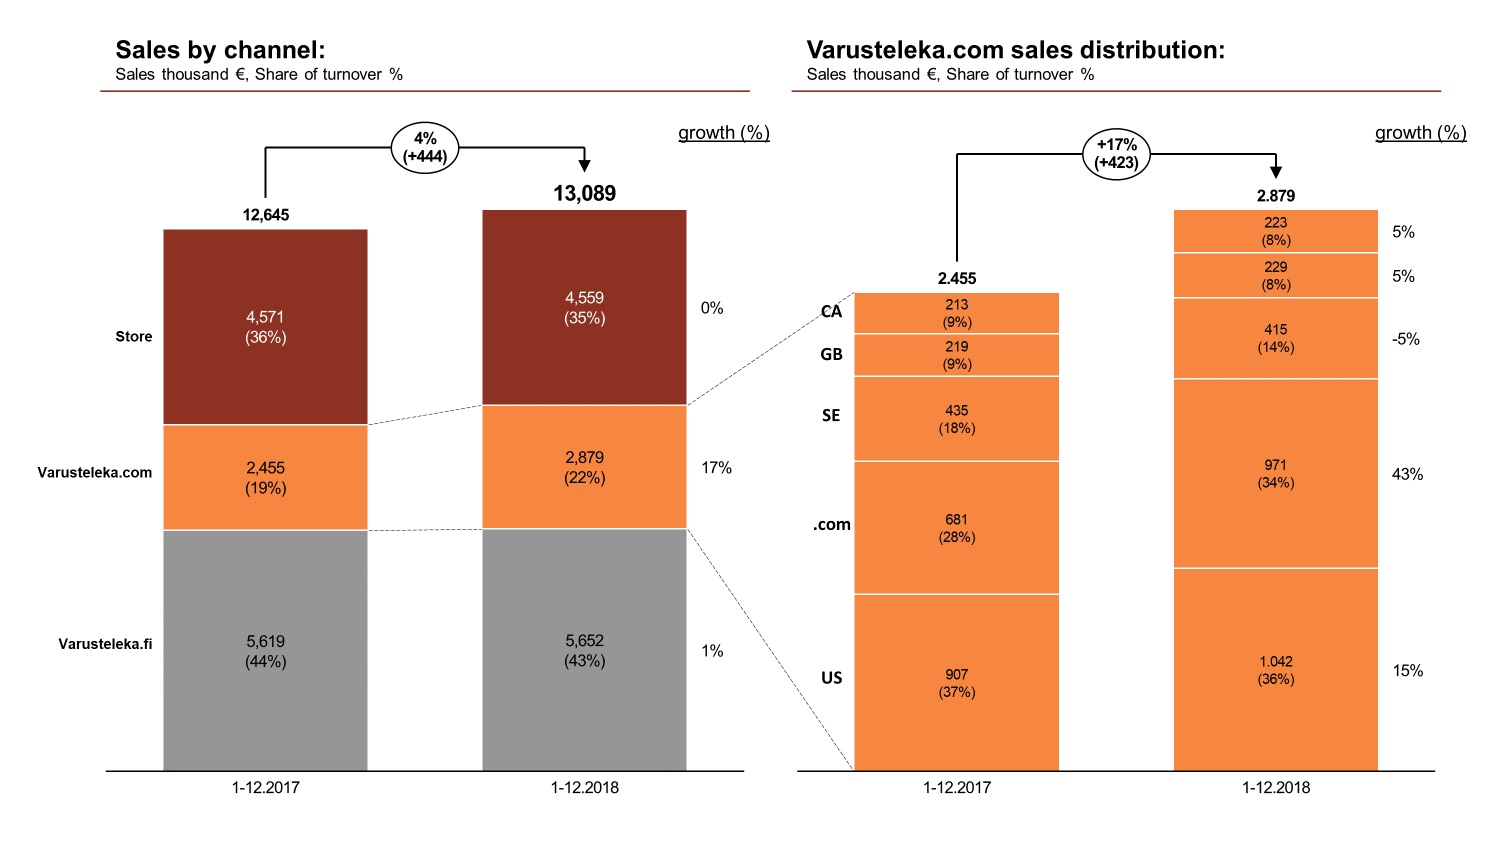 Turnover by sales channel and the structure of .com turnover shown as a bar chart. Turnover 2018  €13,089 M, of which shop €4,559 M (35%) - growth 0%, .com €2,879 M (22%) - growth 17%, .fi €5,652 M (43%) - growth 1%.